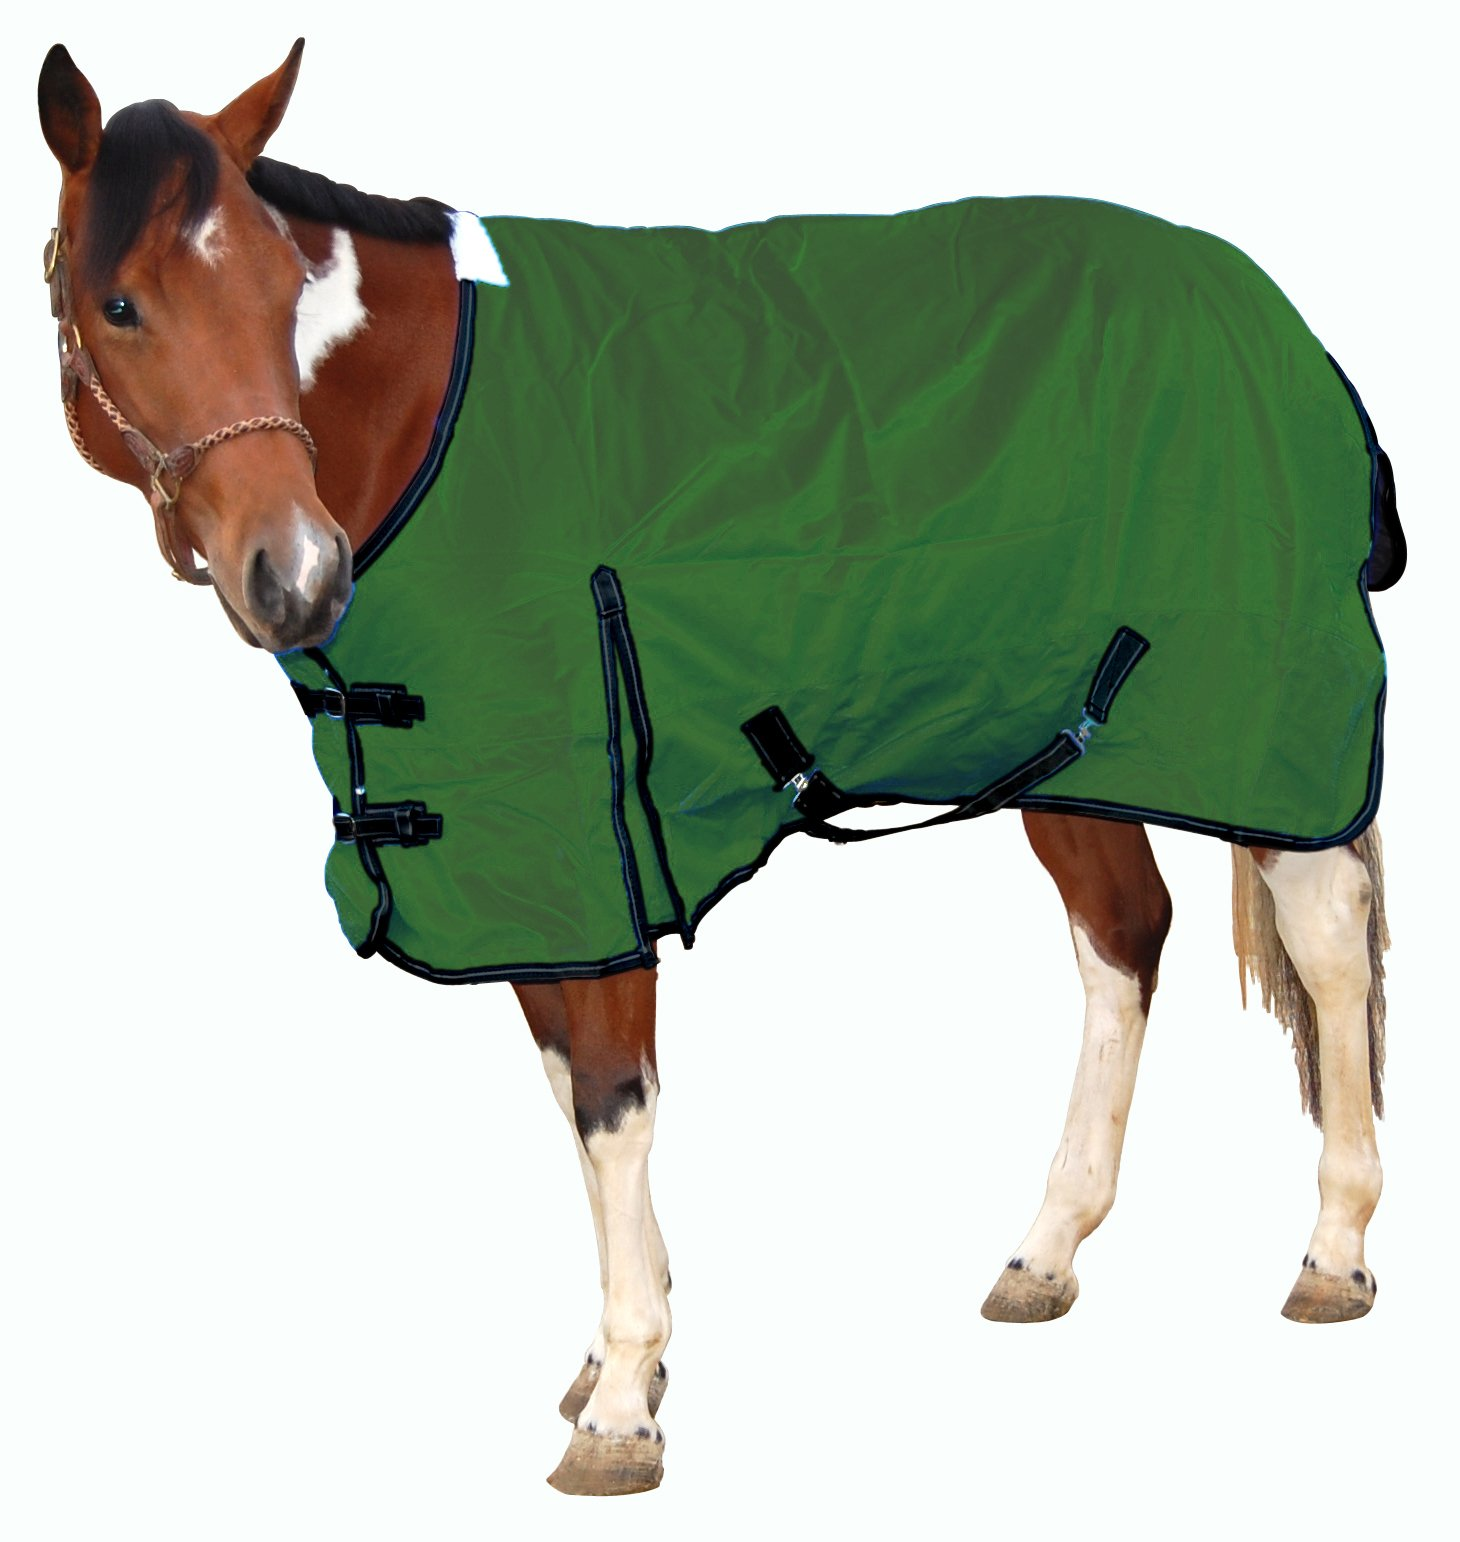 Royal Hamilton WB-1200D-HG-L Turnout Horse Blanket Hunter Green with Black Trim, 81-Inch, Large